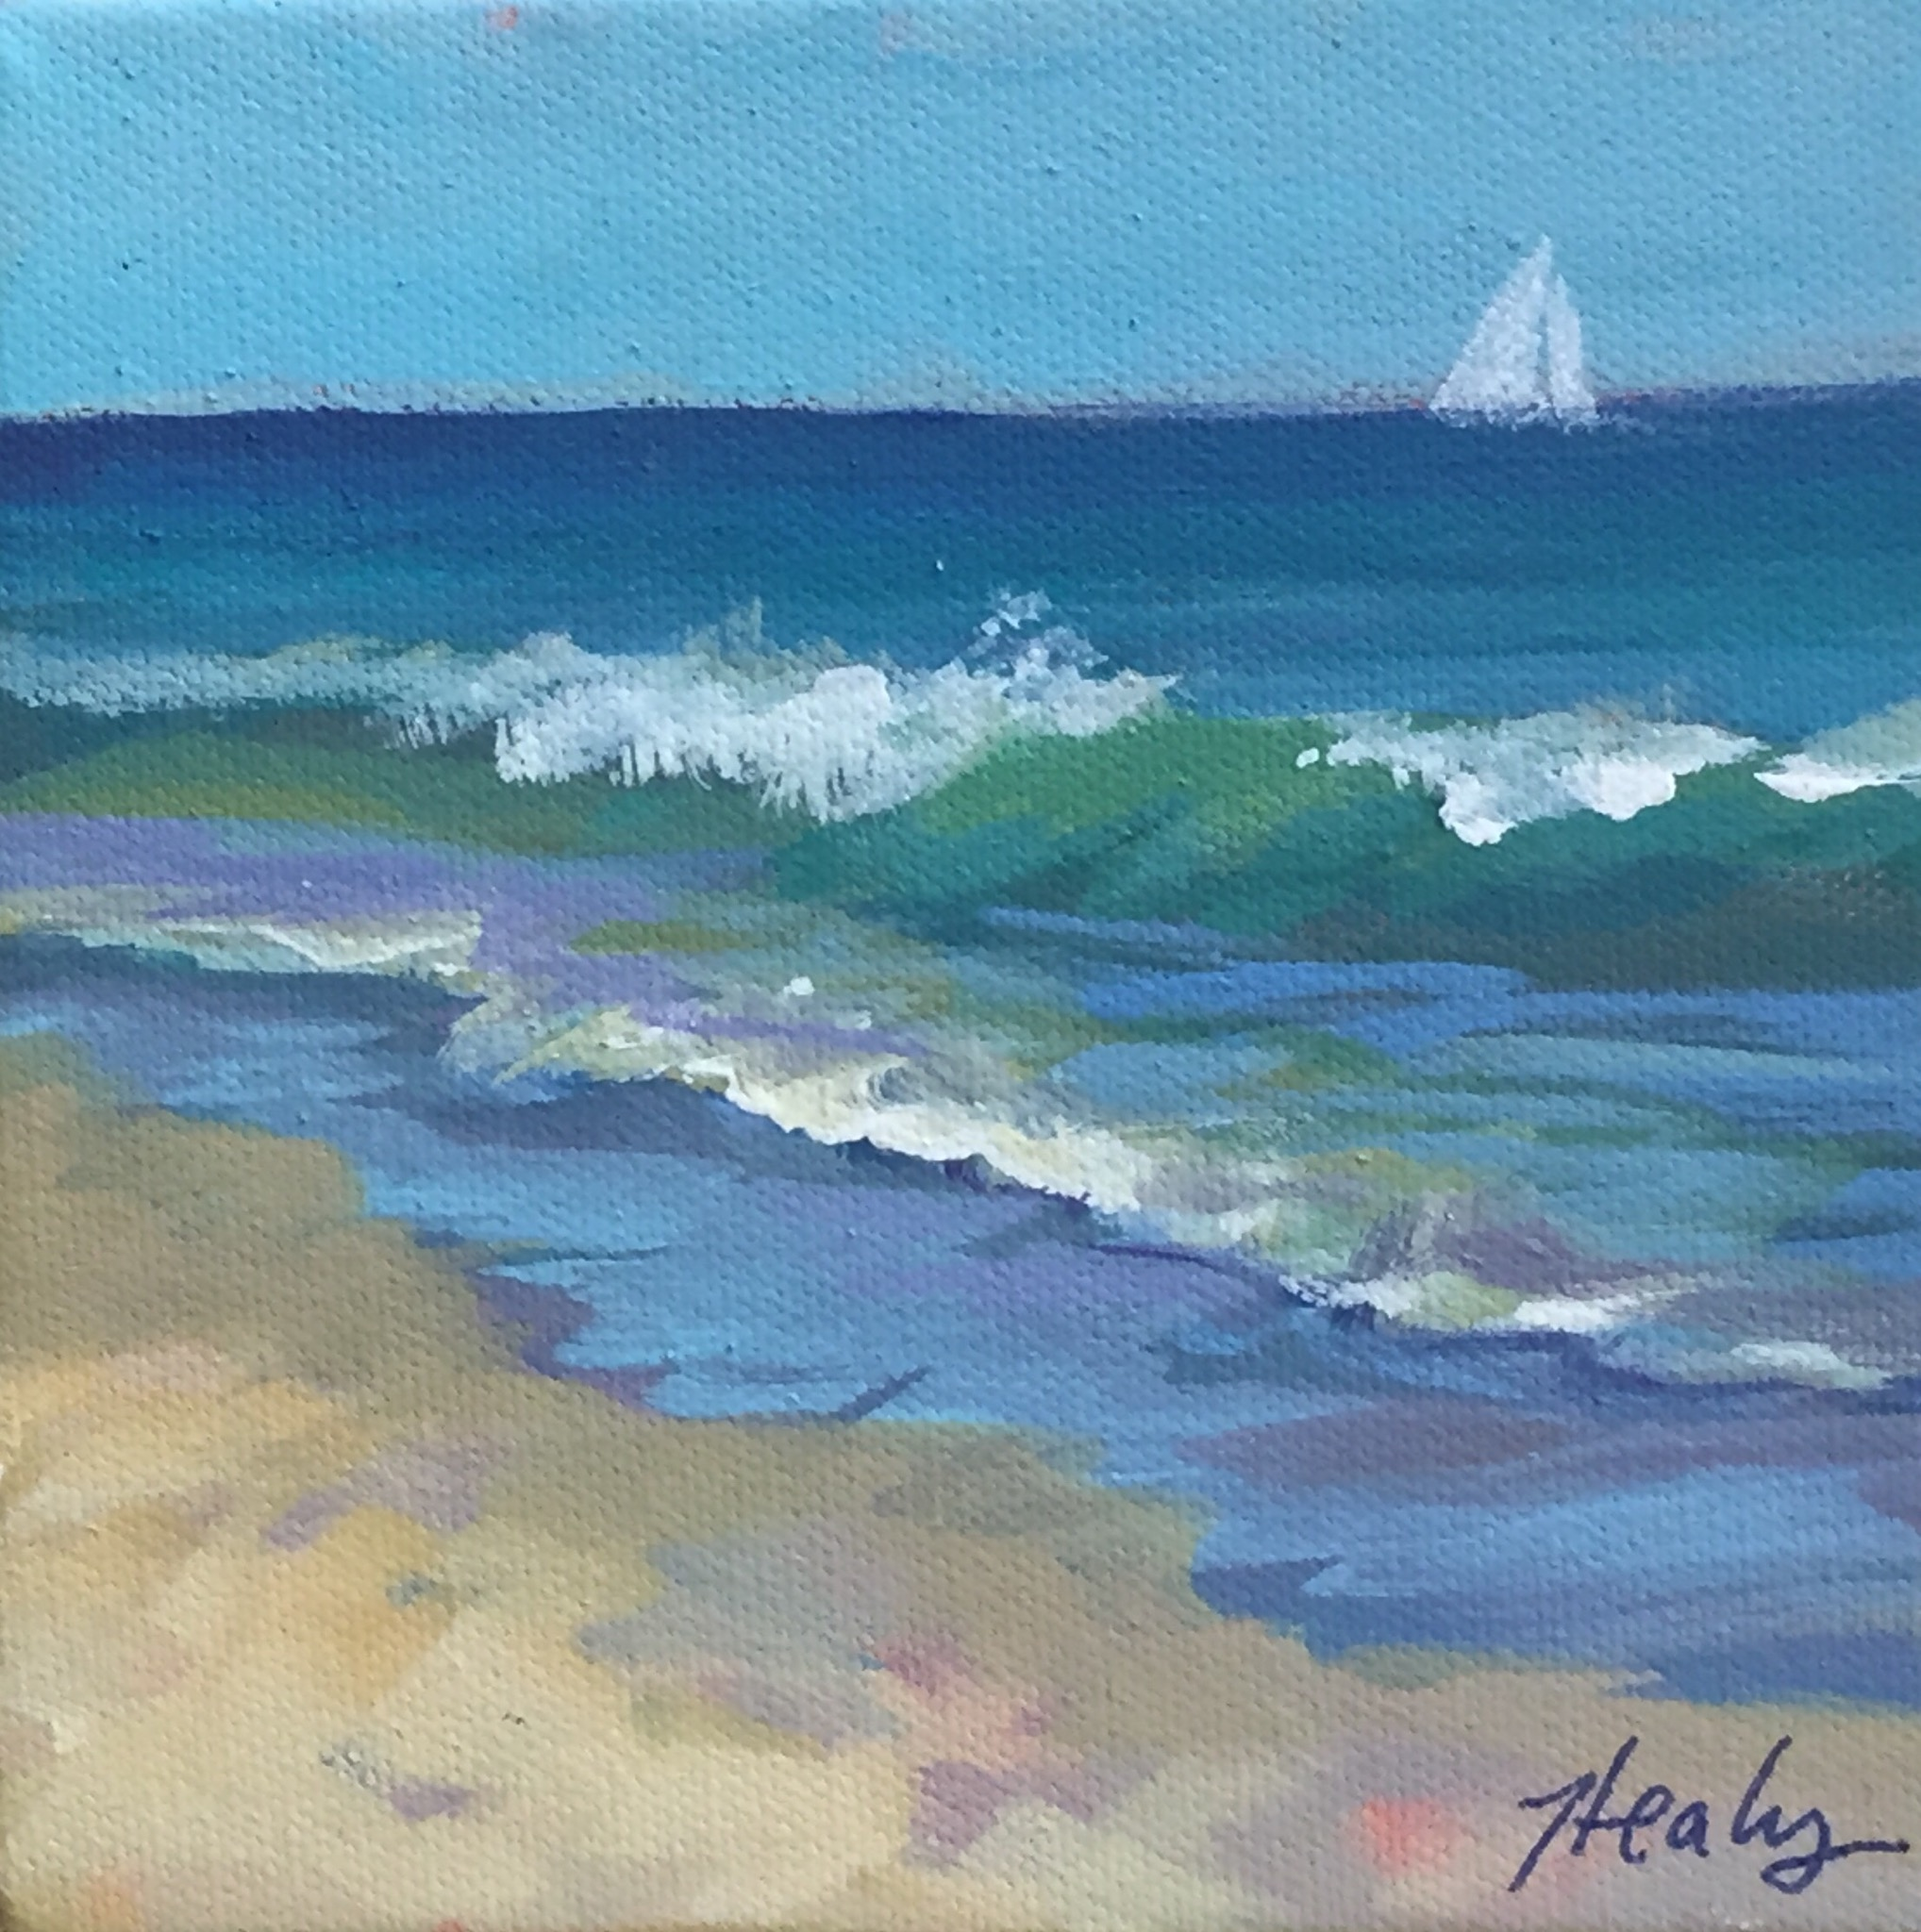 Beach, wave painting